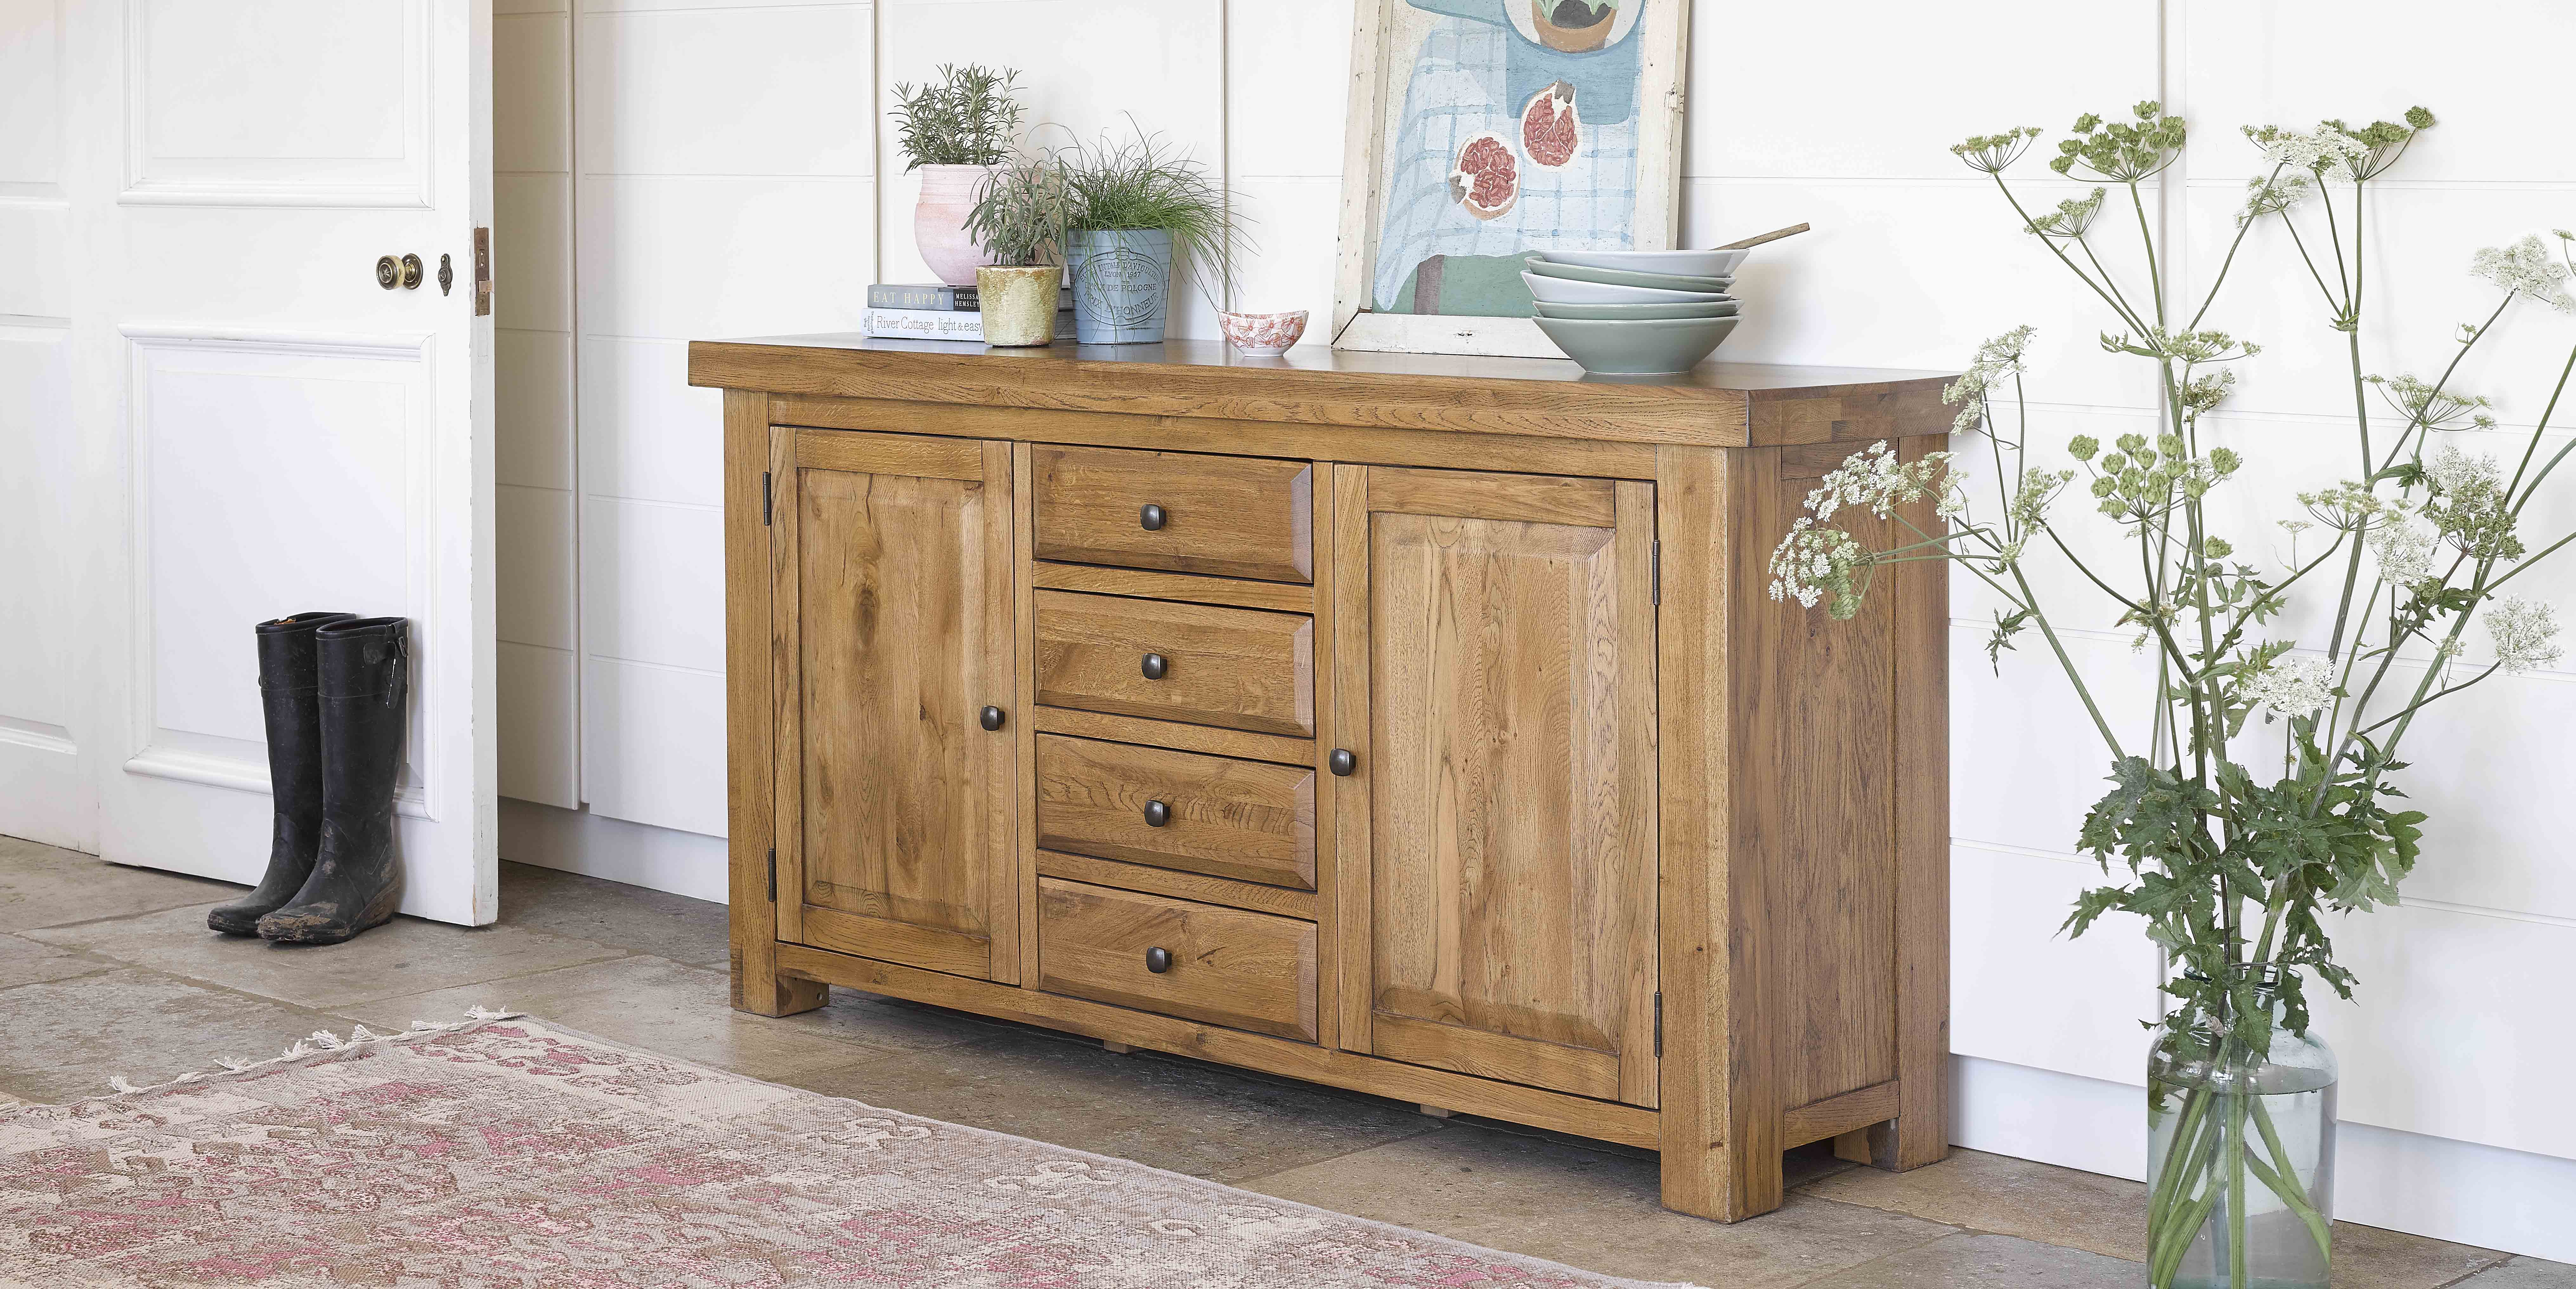 Country cottage kitchen with sideboard